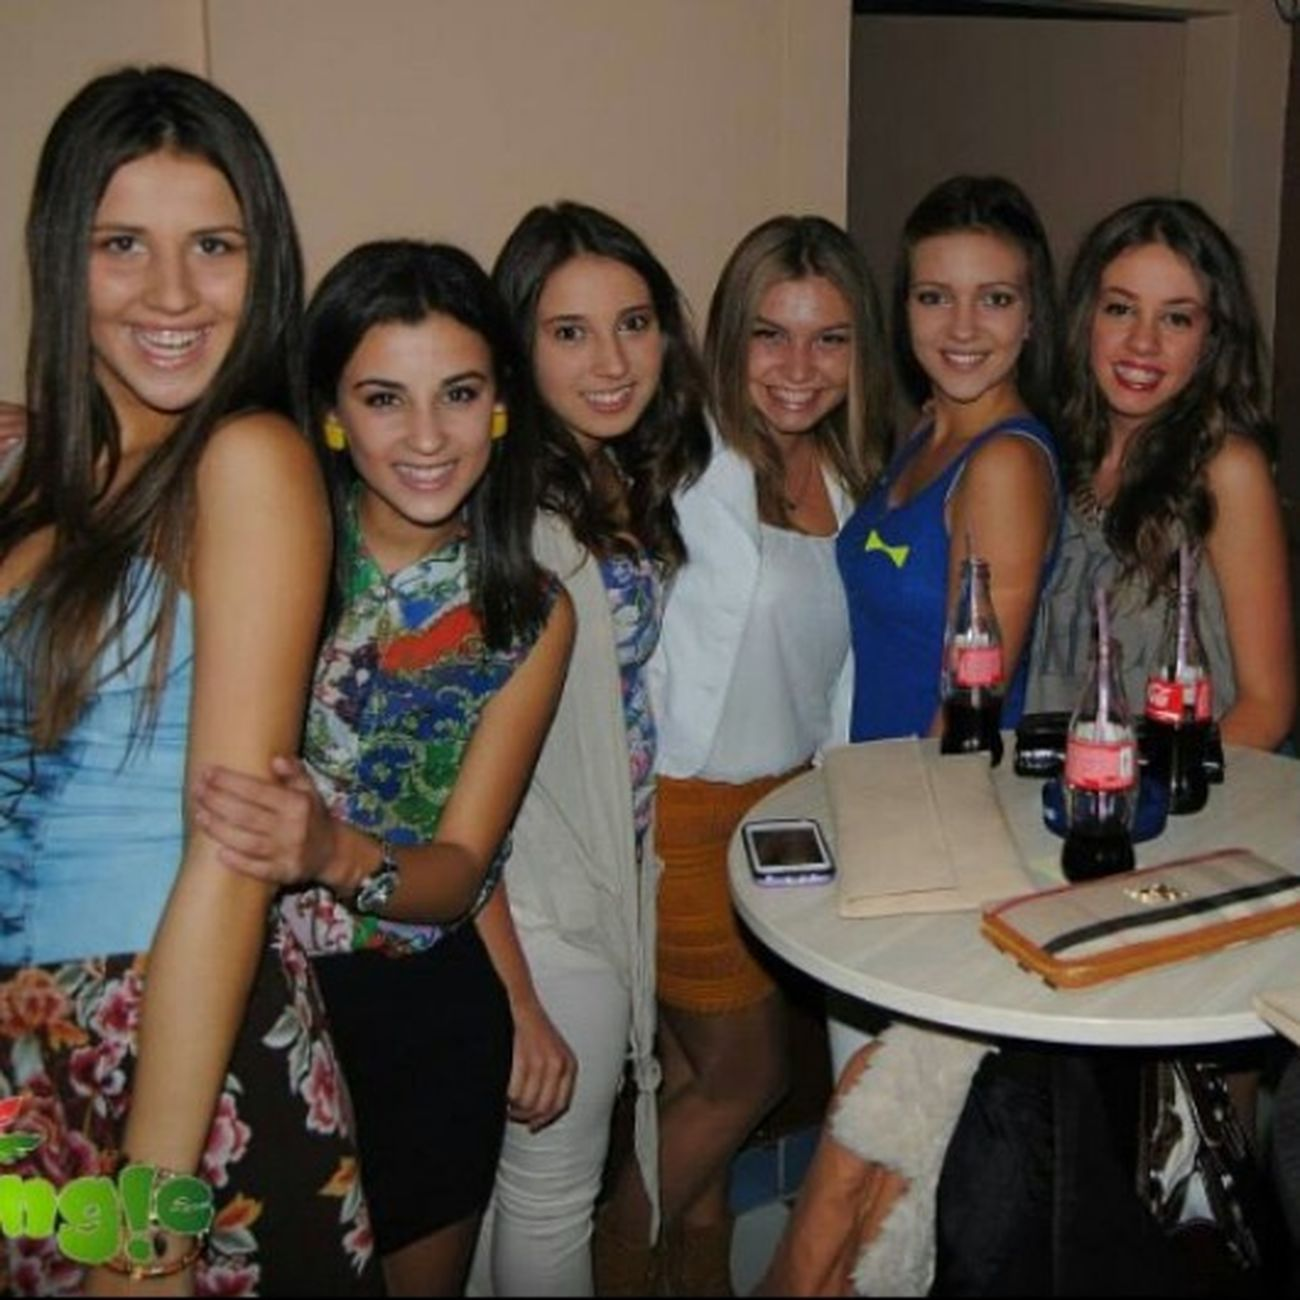 Meandmygirls Girlsnightout Partytime Partying With These Beauties :) <3